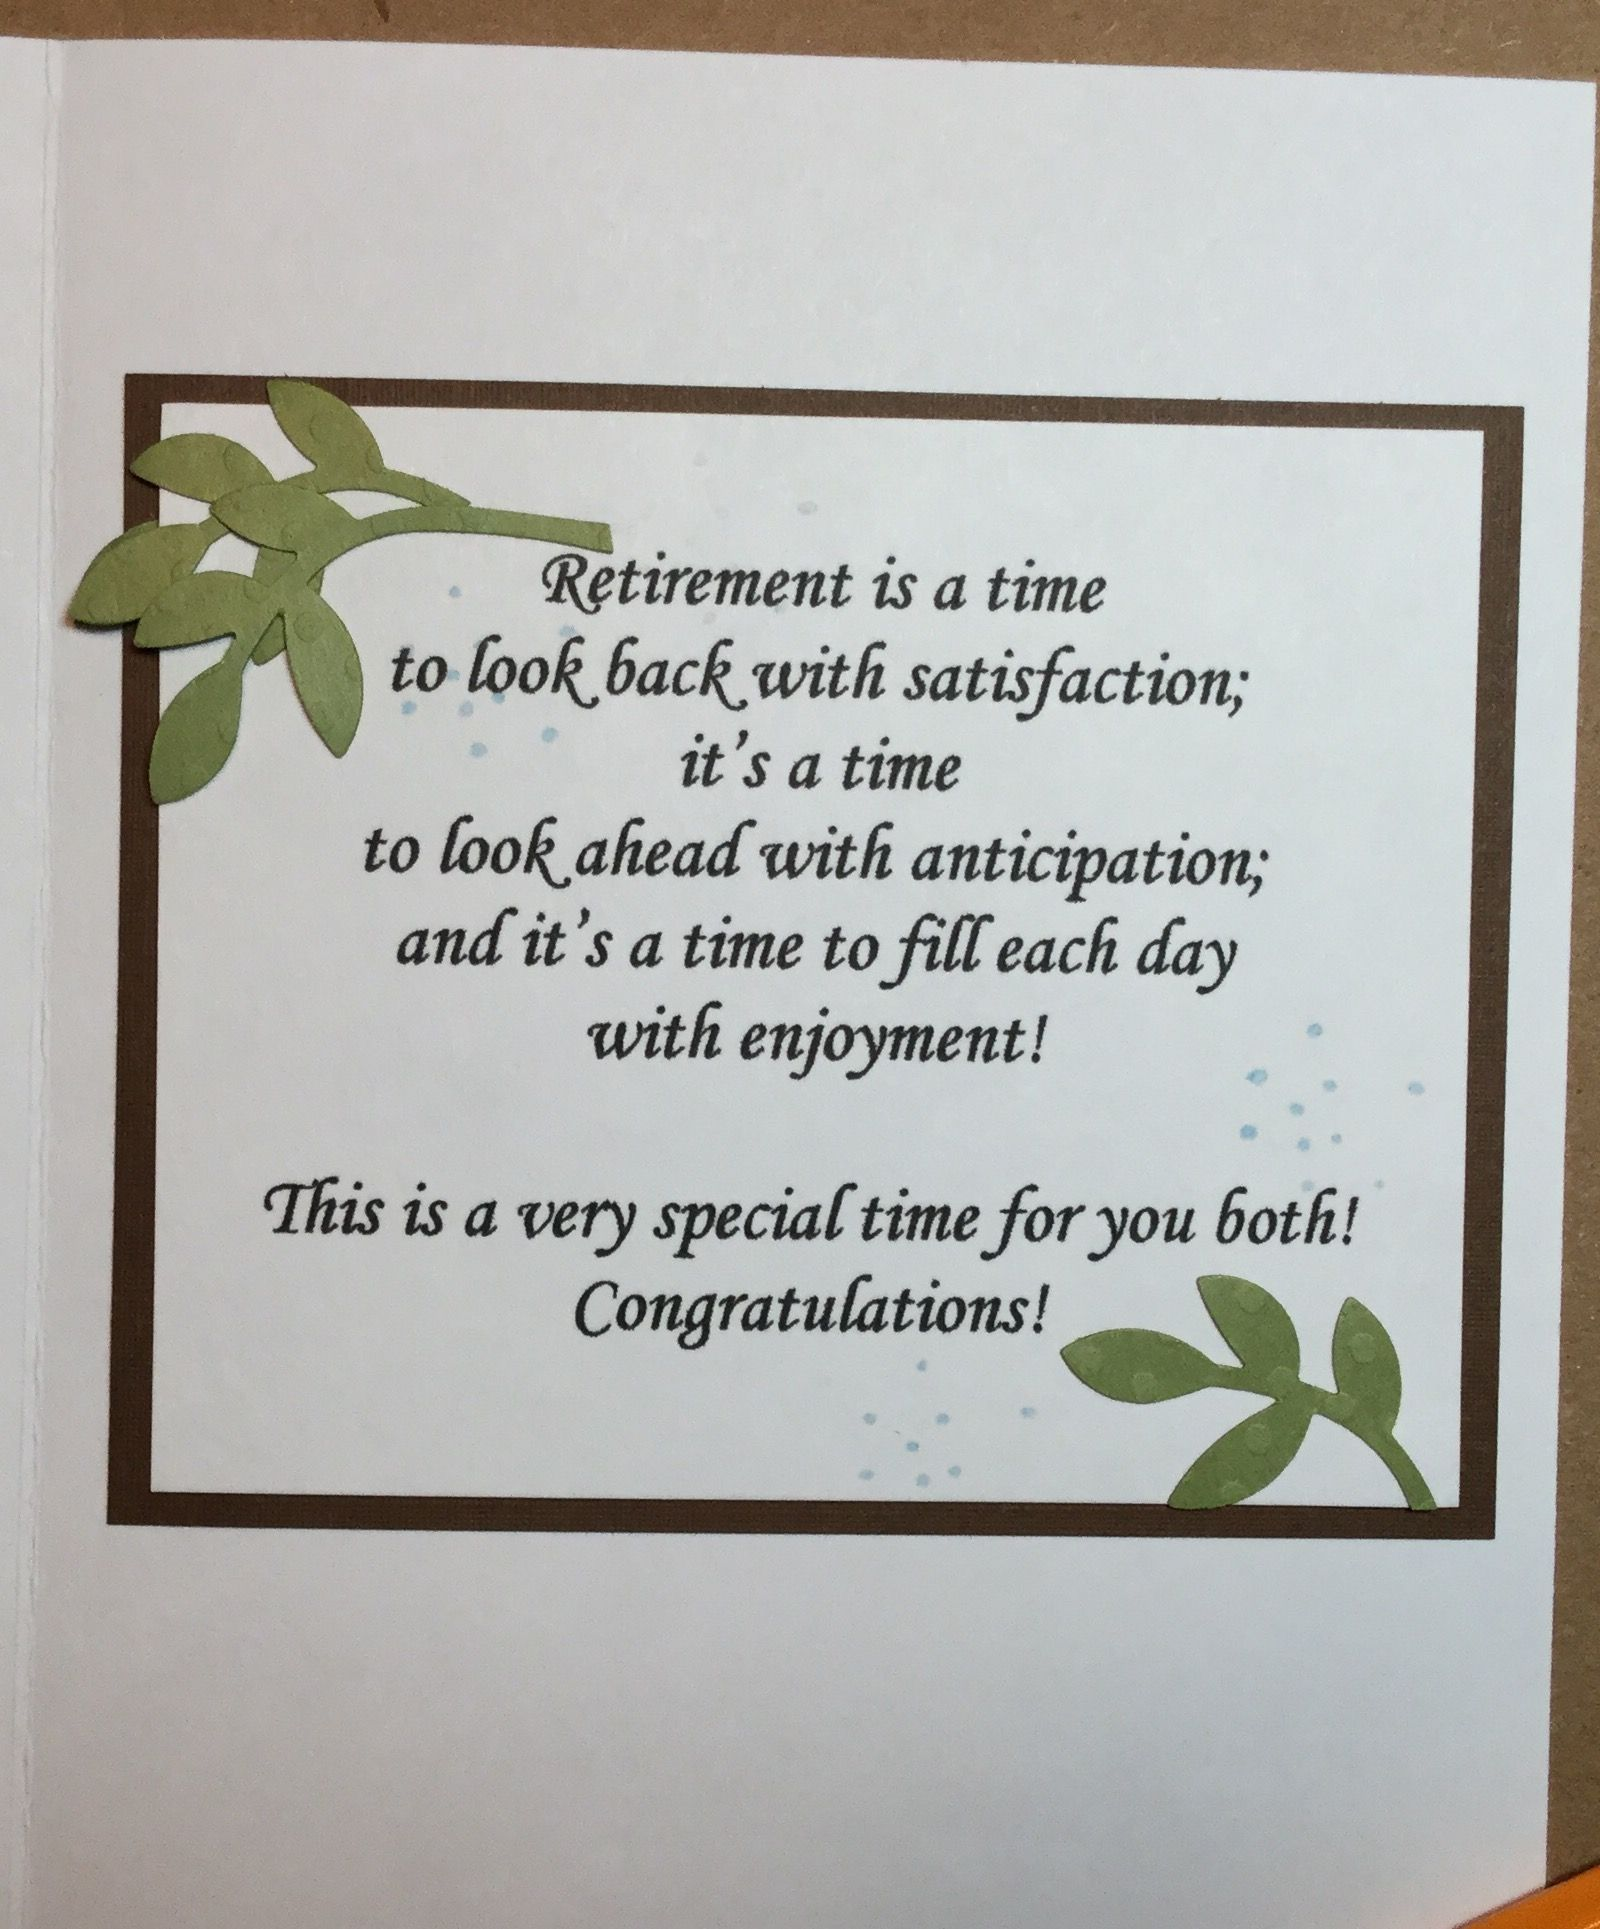 Pin by debbie on sentiments pinterest retirement retirement greeting card sentiments greeting cards scrapbook layouts scrapbooking retirement cards card ideas gift ideas card sayings handmade christmas cards kristyandbryce Images